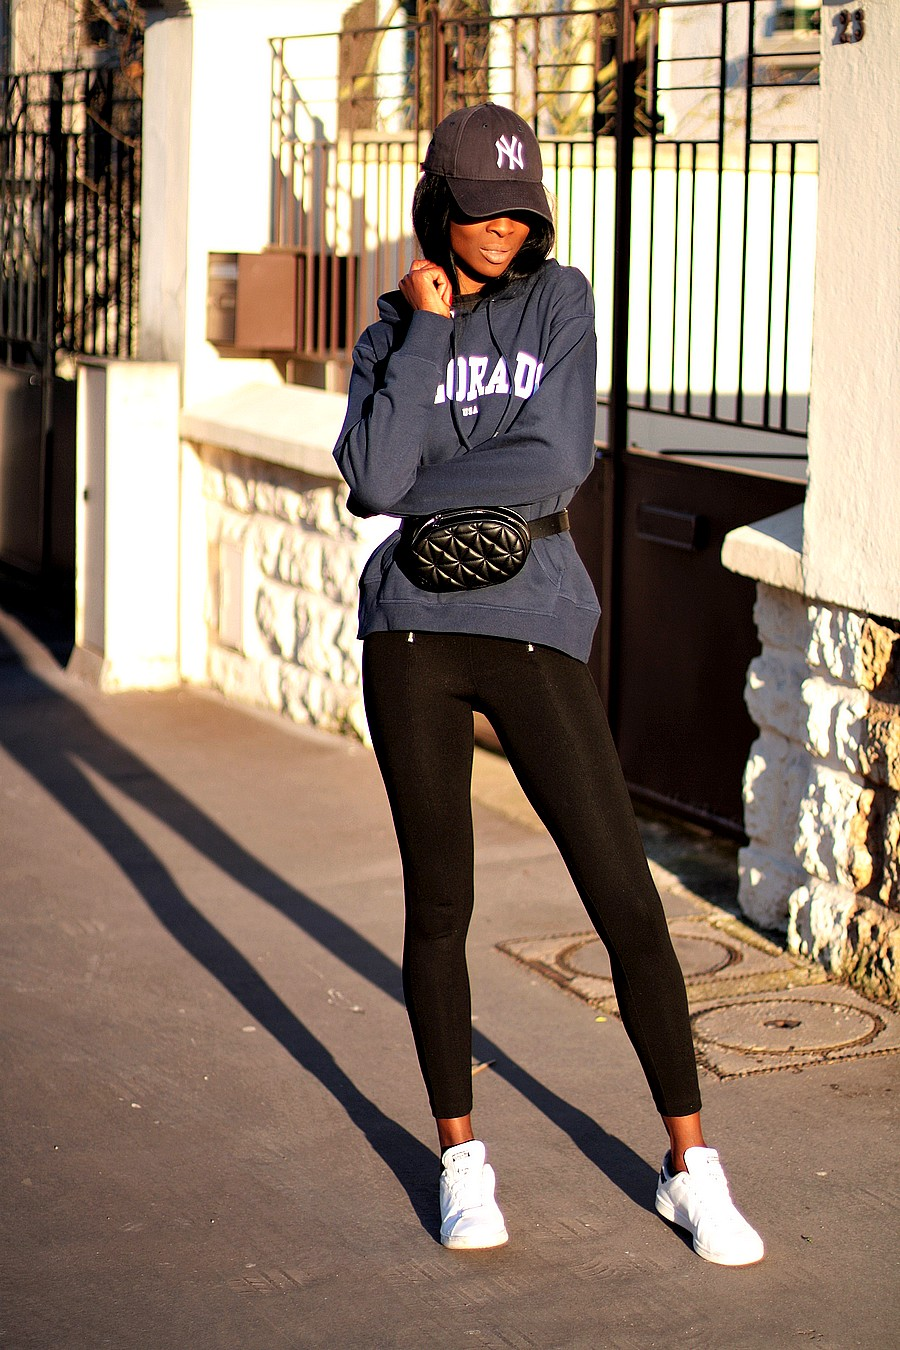 inspiration-tenue-casual-avec-adidas-stan-smith-sac-ceinture-sweat